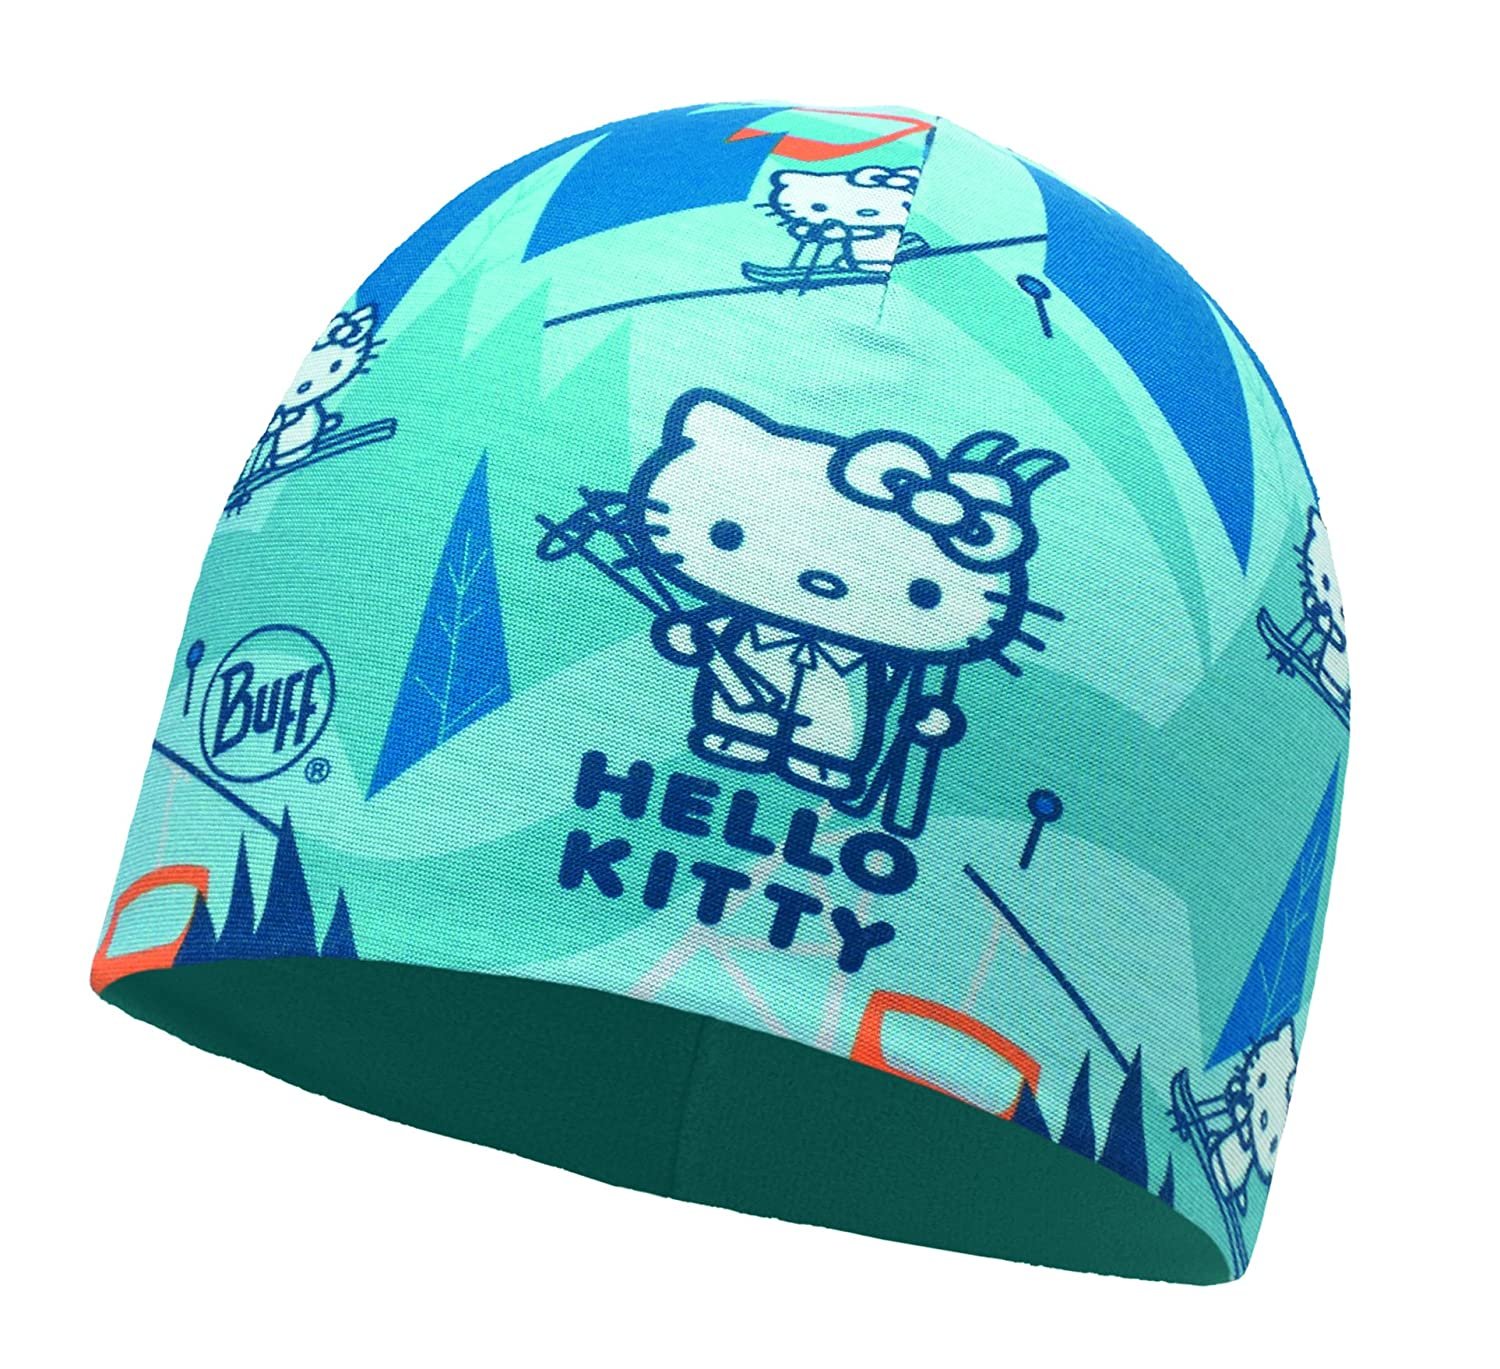 Buff Kids Microfiber & Polar Hat Hello Kity Ski Day Turquoise